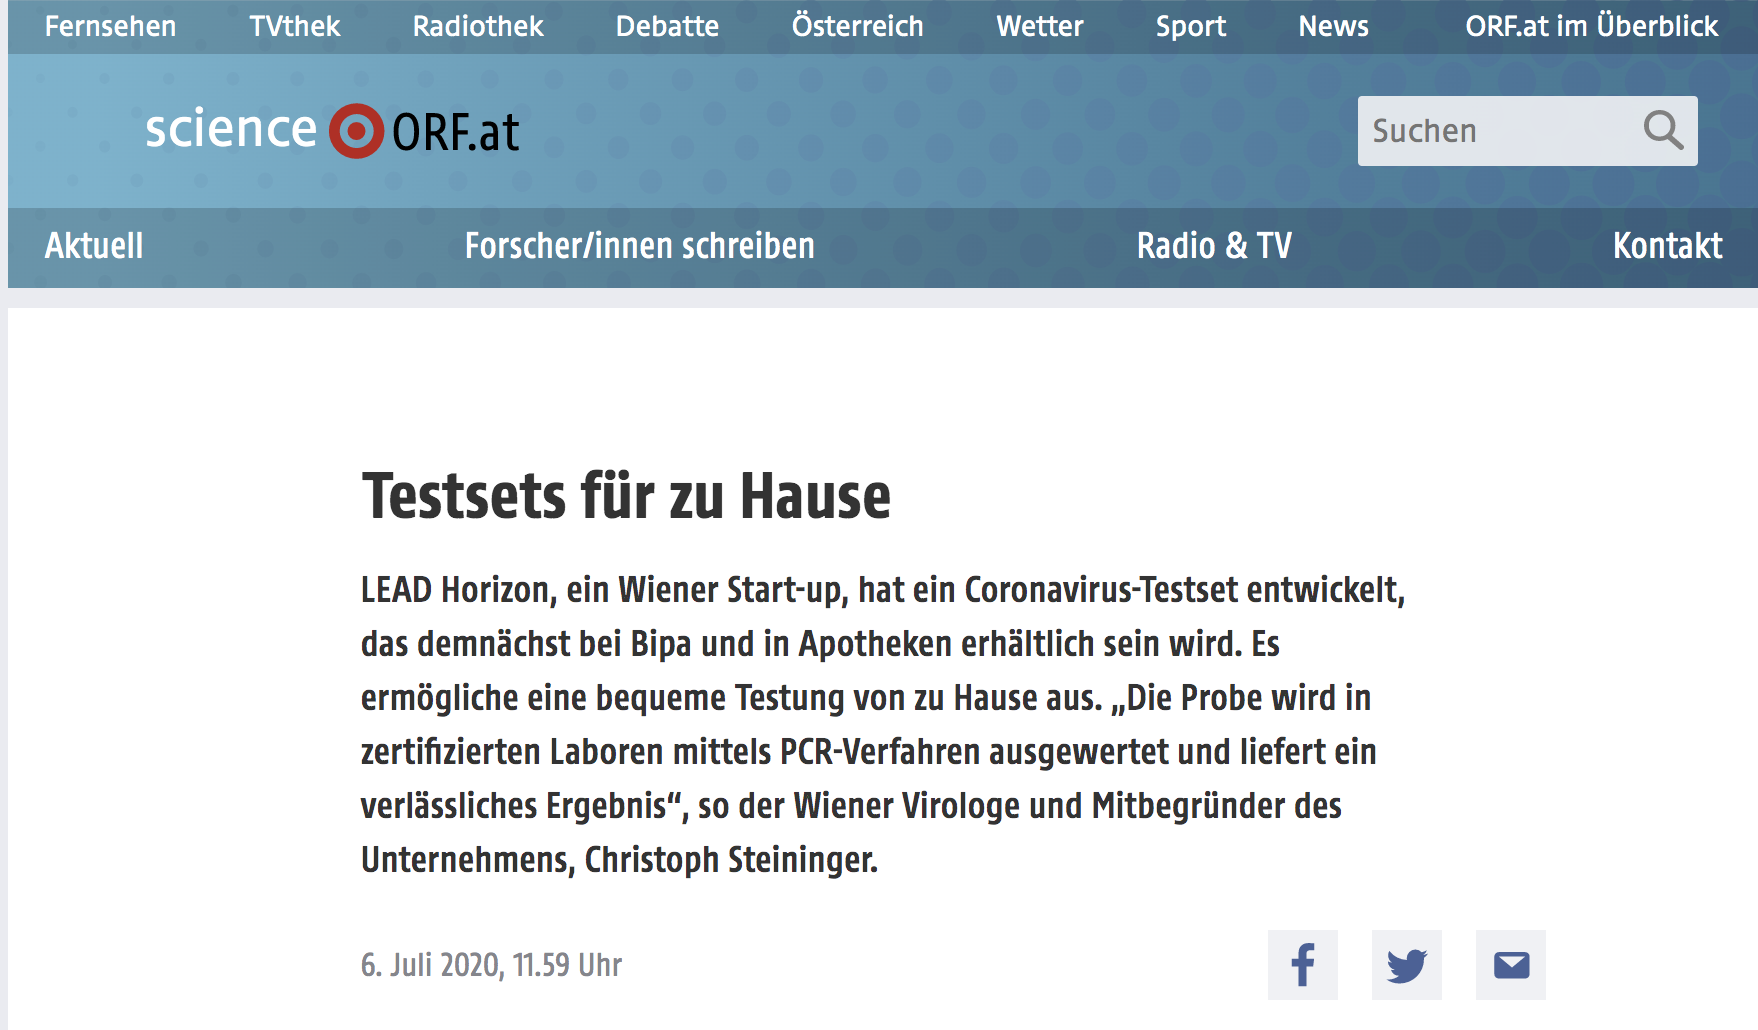 Orf 6.7.2020